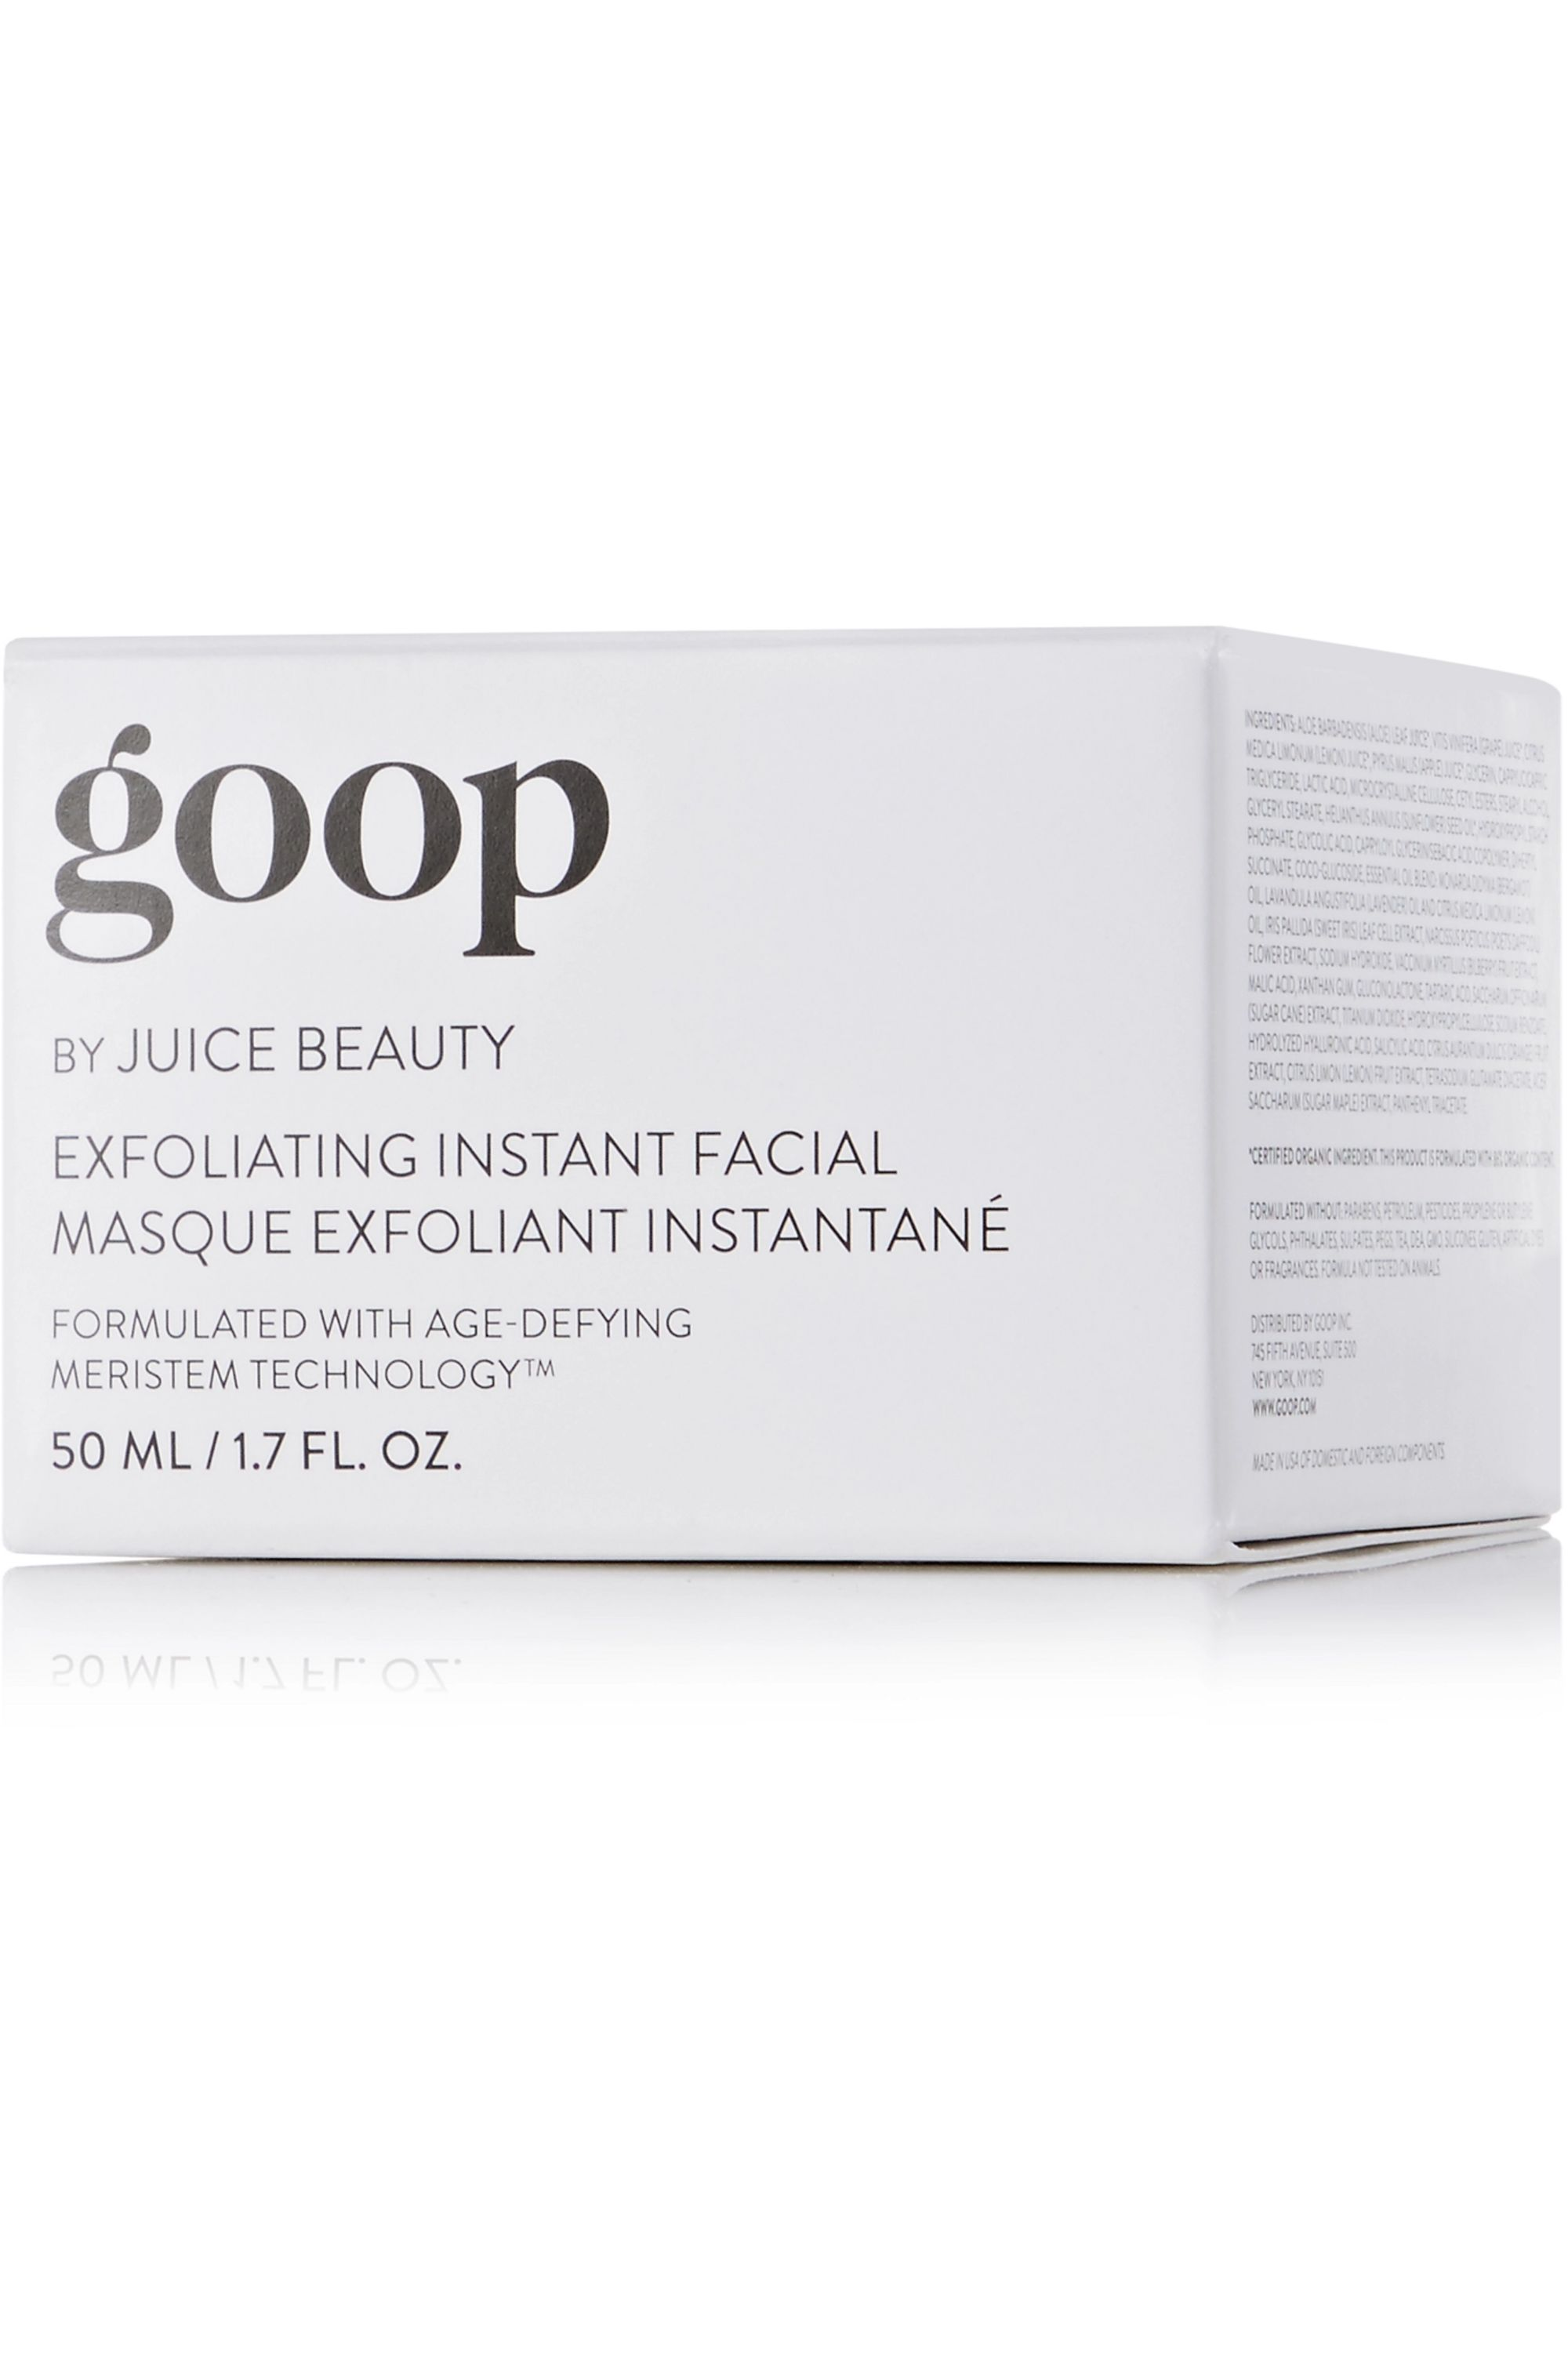 goop Exfoliating Instant Facial, 50ml